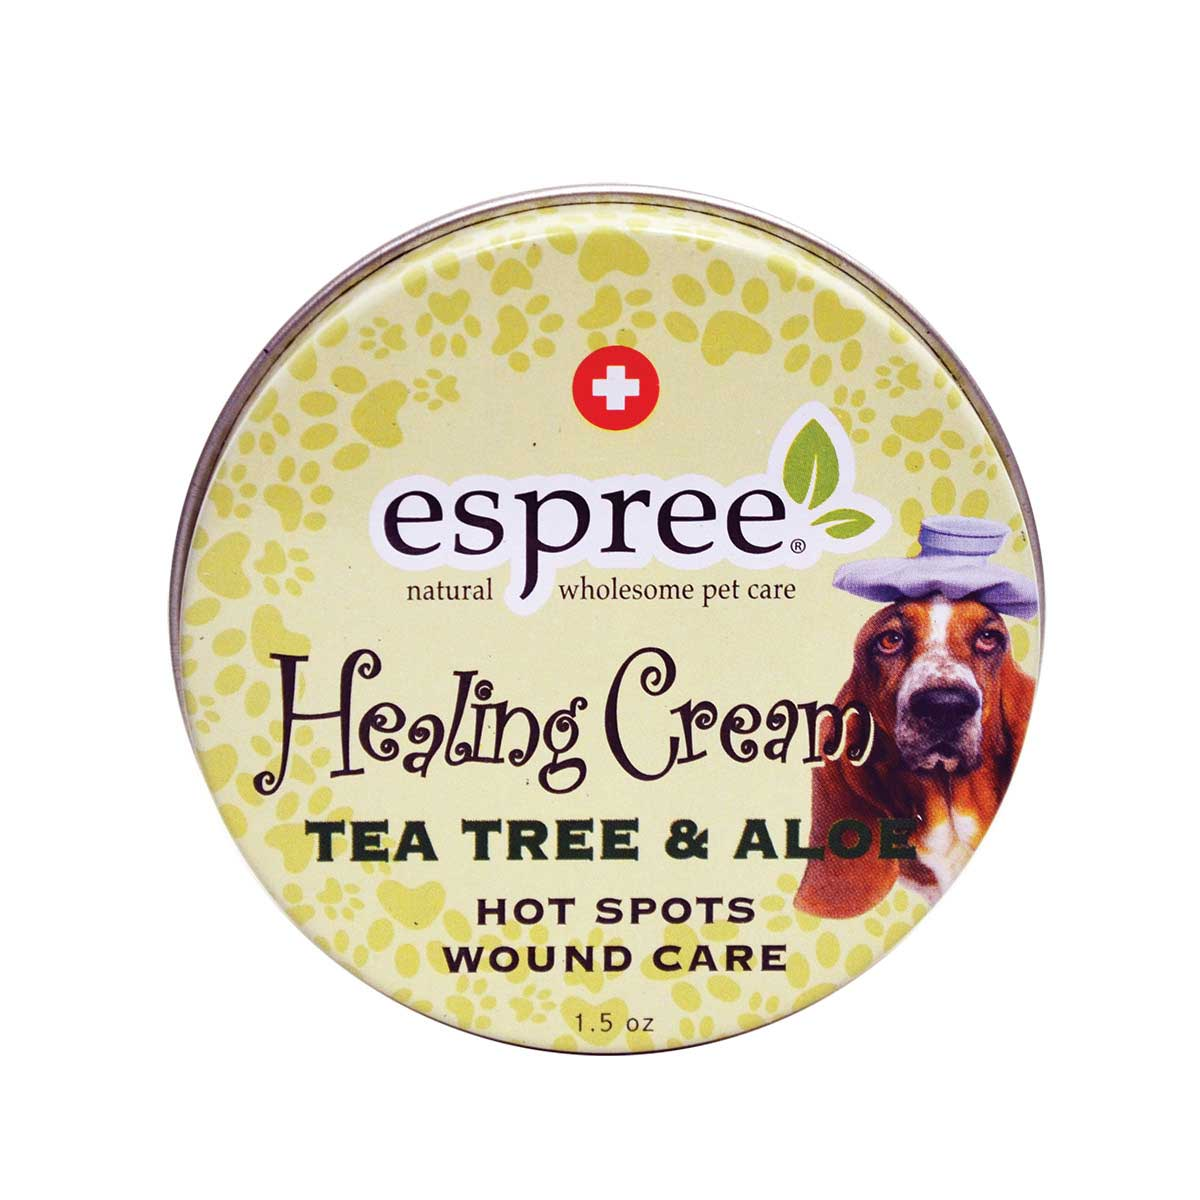 Espree Healing Cream with Tea Tree and Aloe - Hot Spots Wound Care